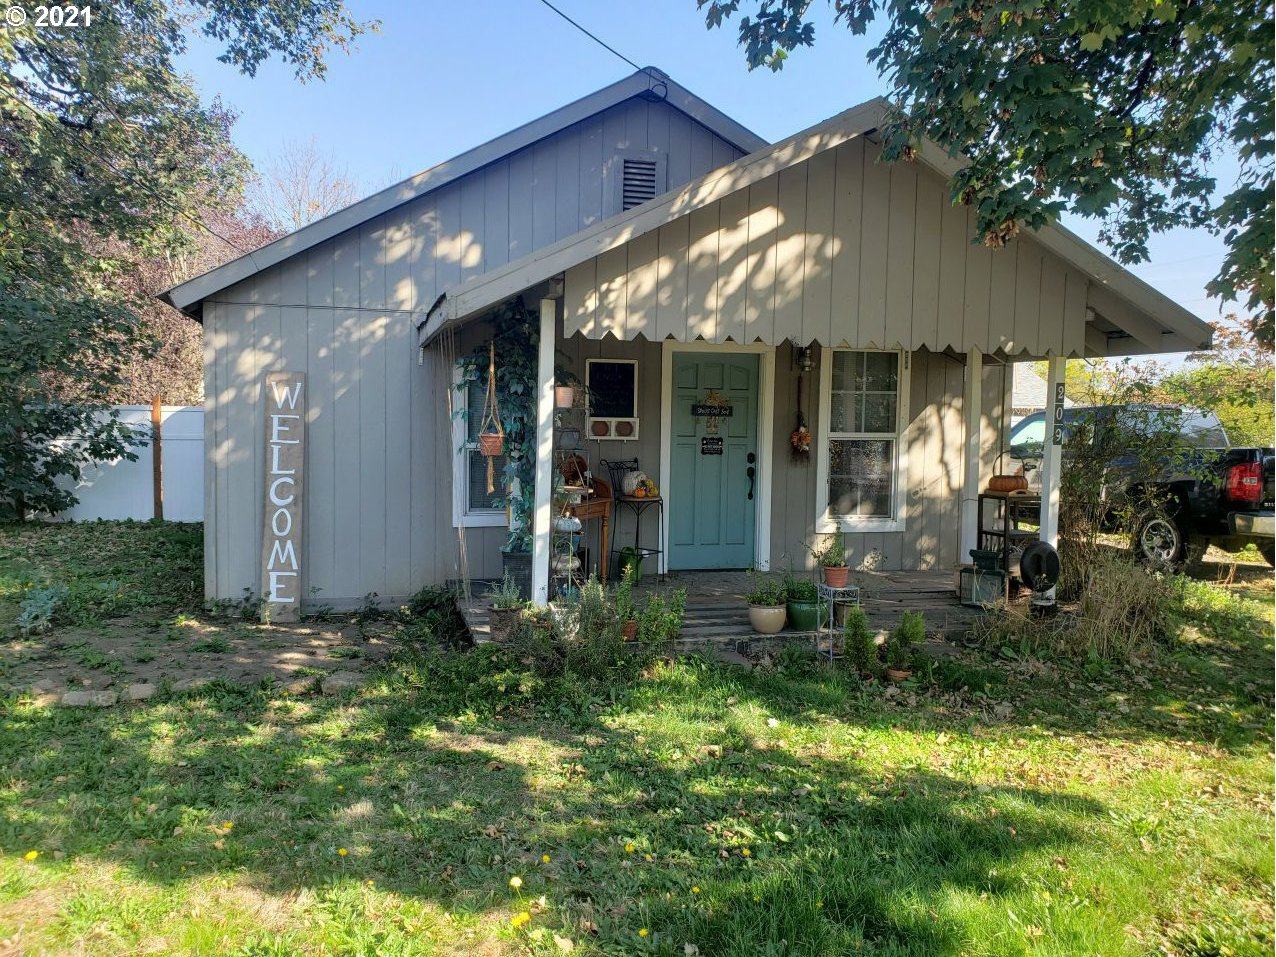 209 W 3RD ST, Molalla OR 97038